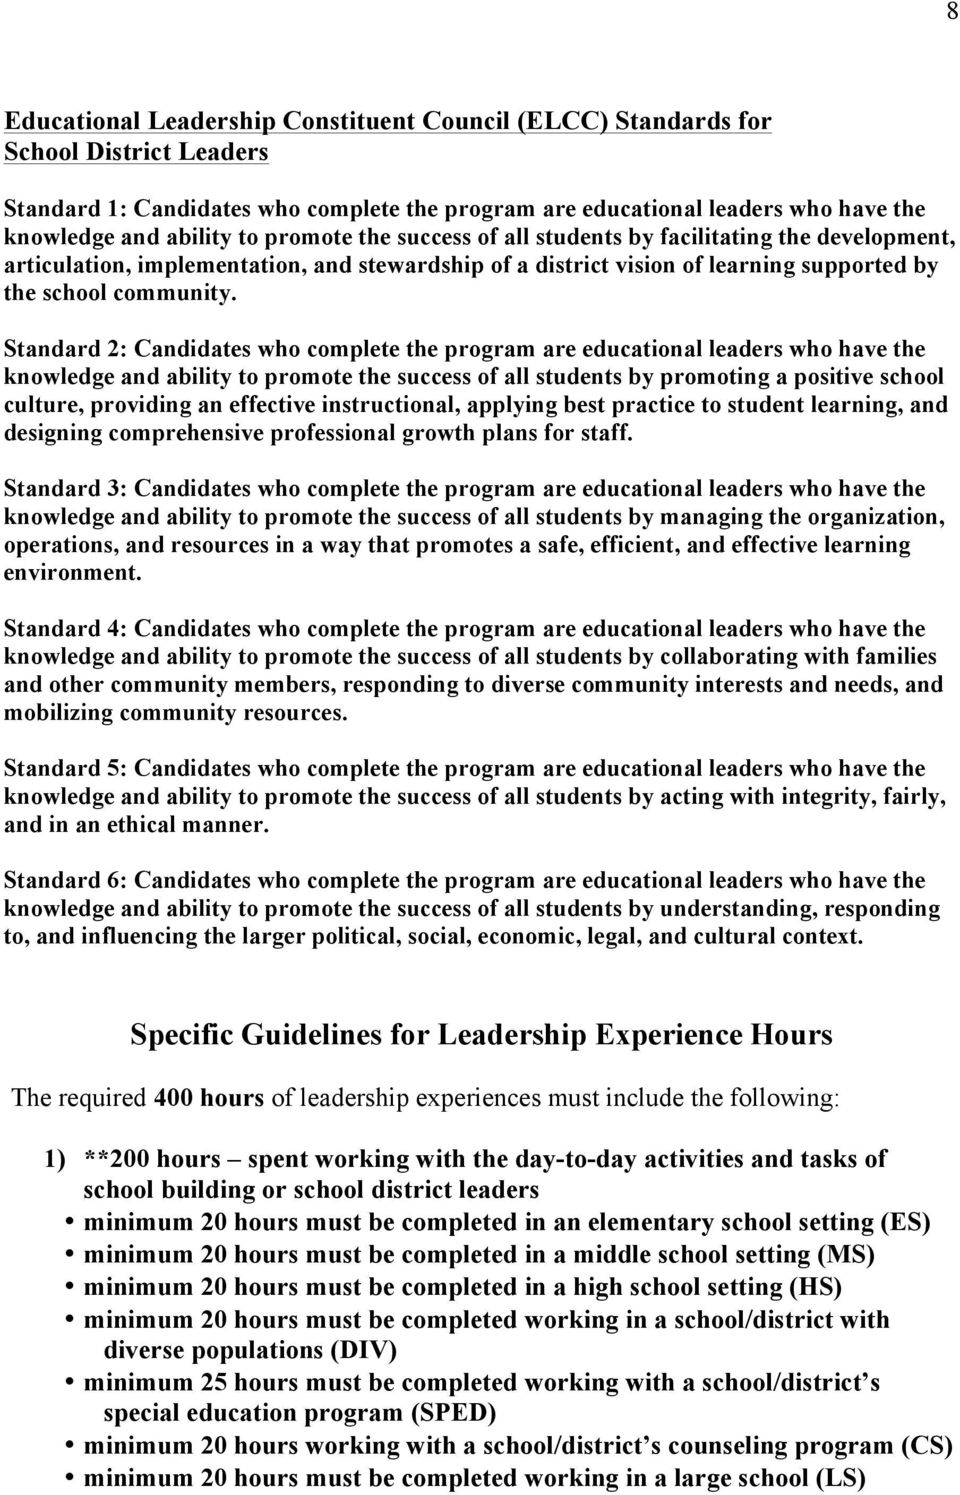 Standard 2: Candidates who complete the program are educational leaders who have the knowledge and ability to promote the success of all students by promoting a positive school culture, providing an